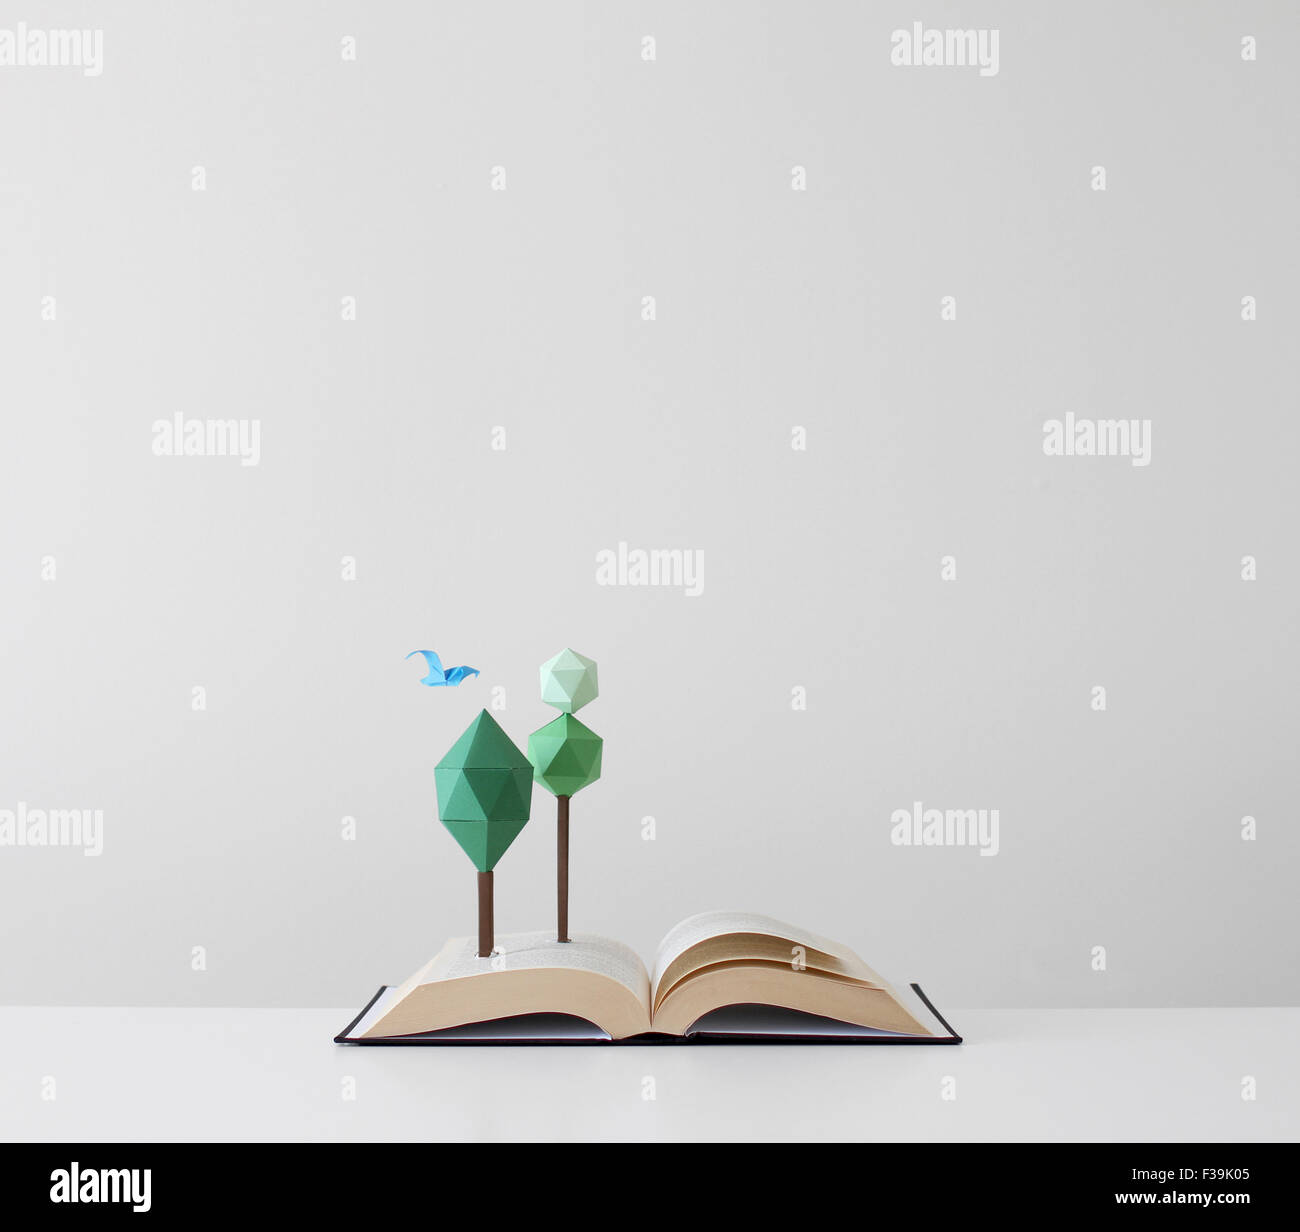 Trees and bird growing out of an open book - Stock Image